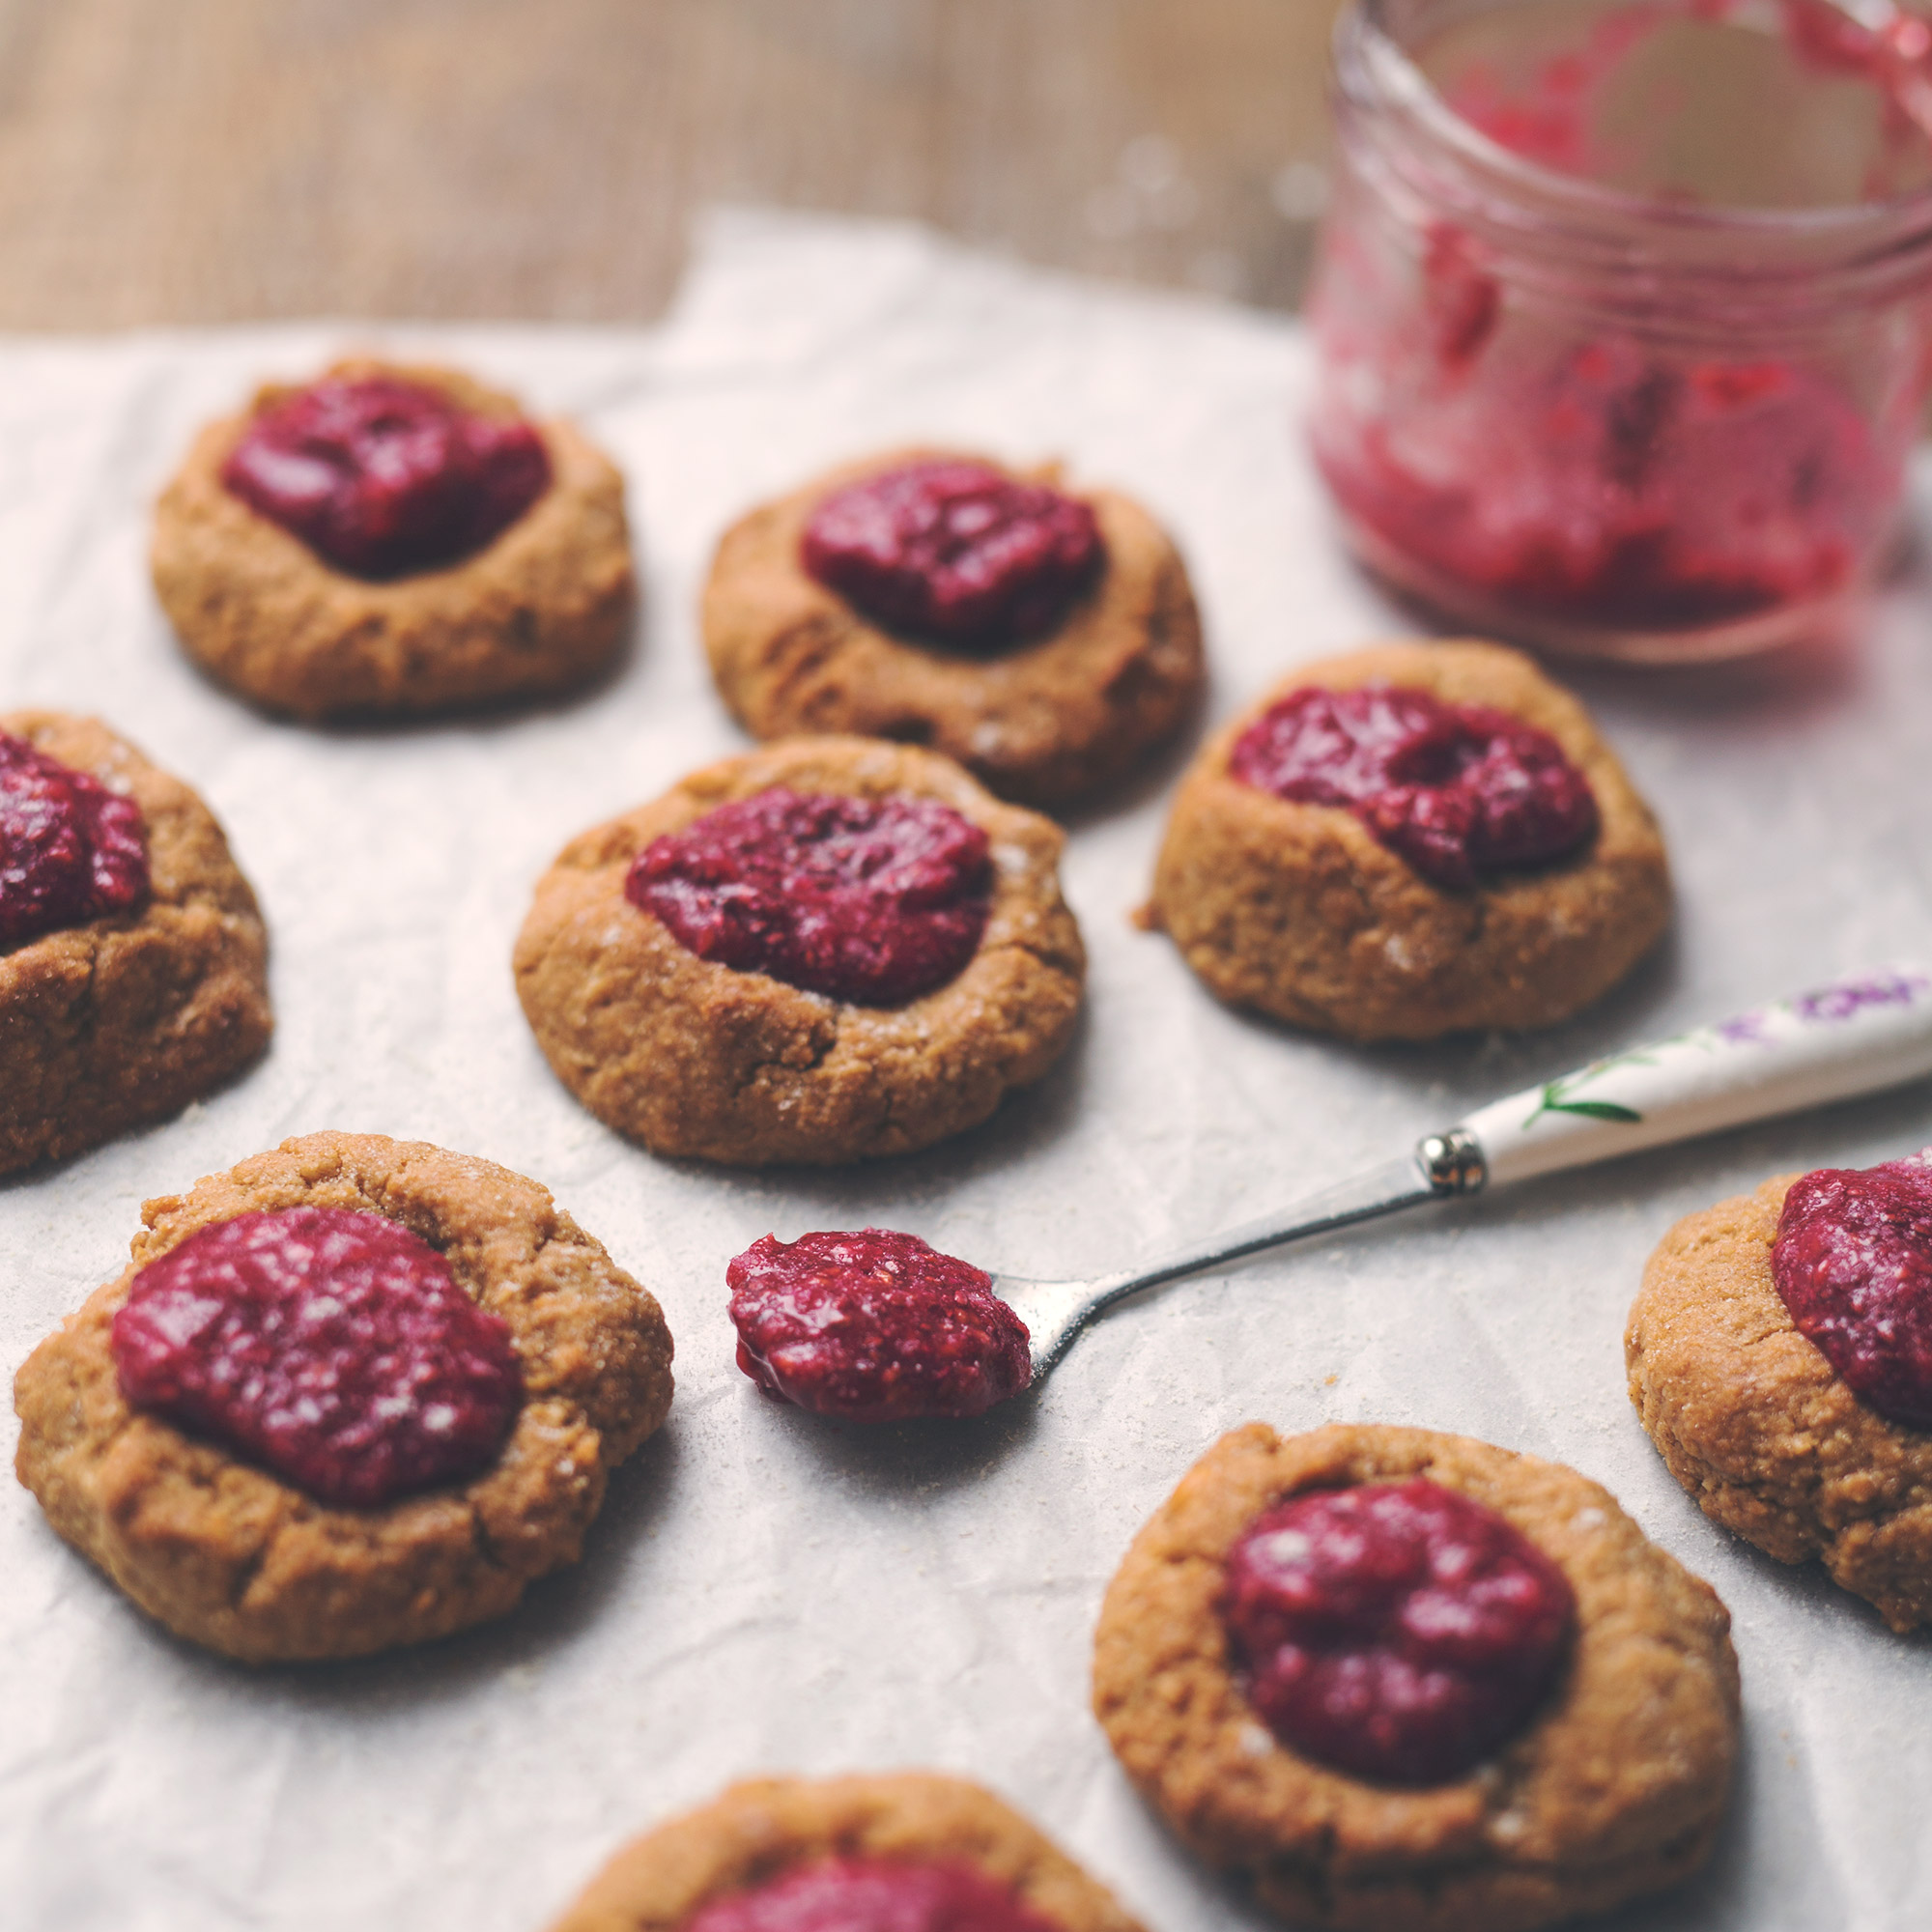 Peanut Butter & Jelly Thumbprint Cookies with Raspberry Chia Jam